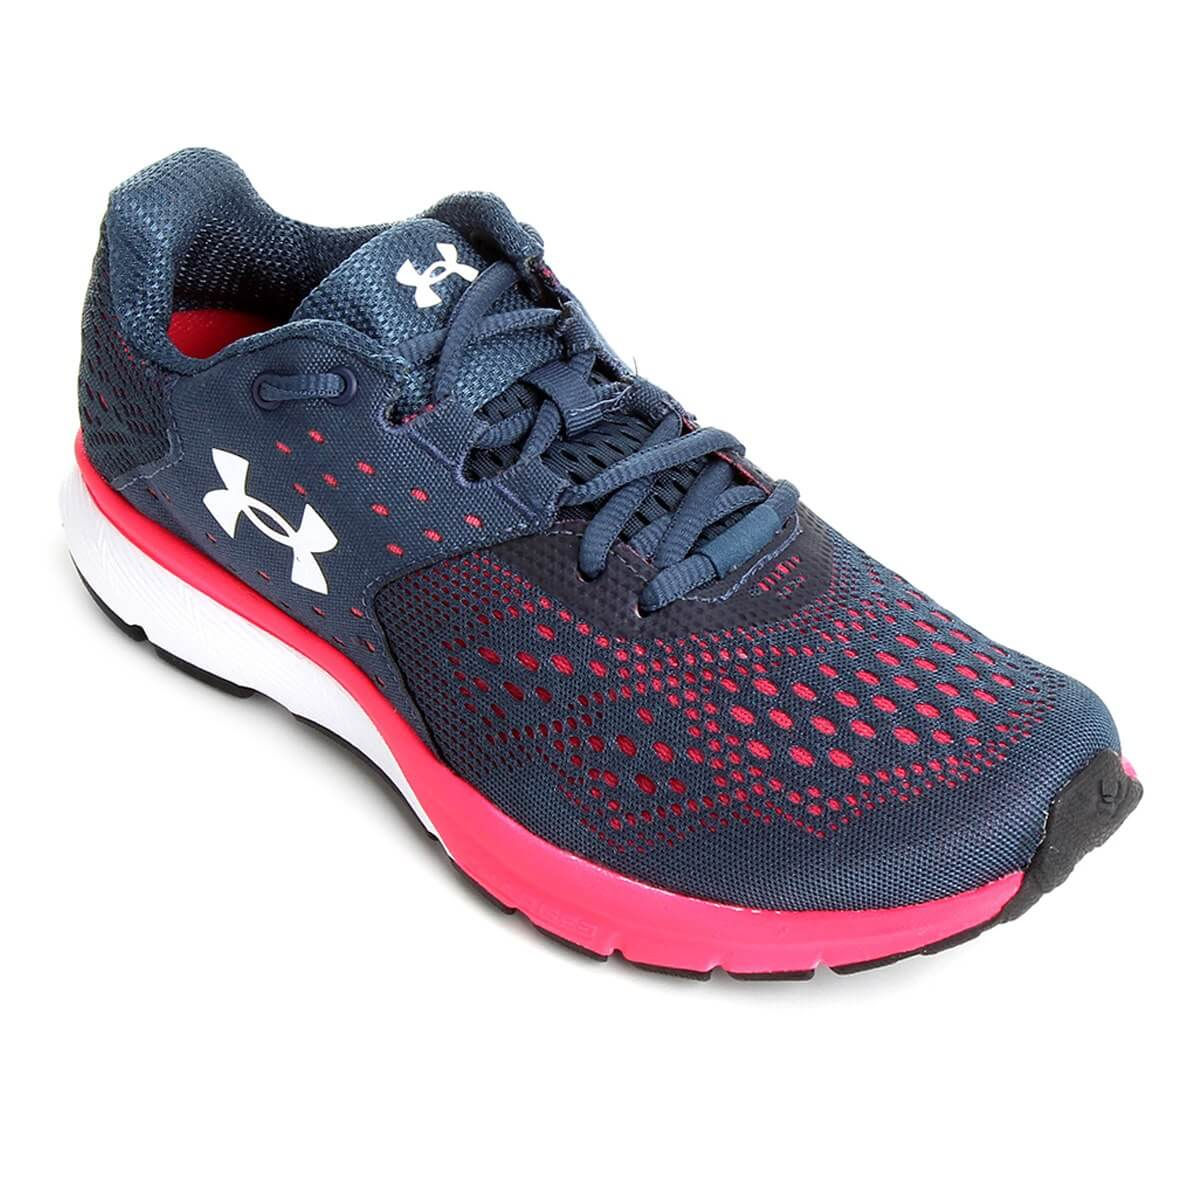 B78 2649 791 zoom1 - Tênis Under Armour Charged Rebel SA - R$135,99